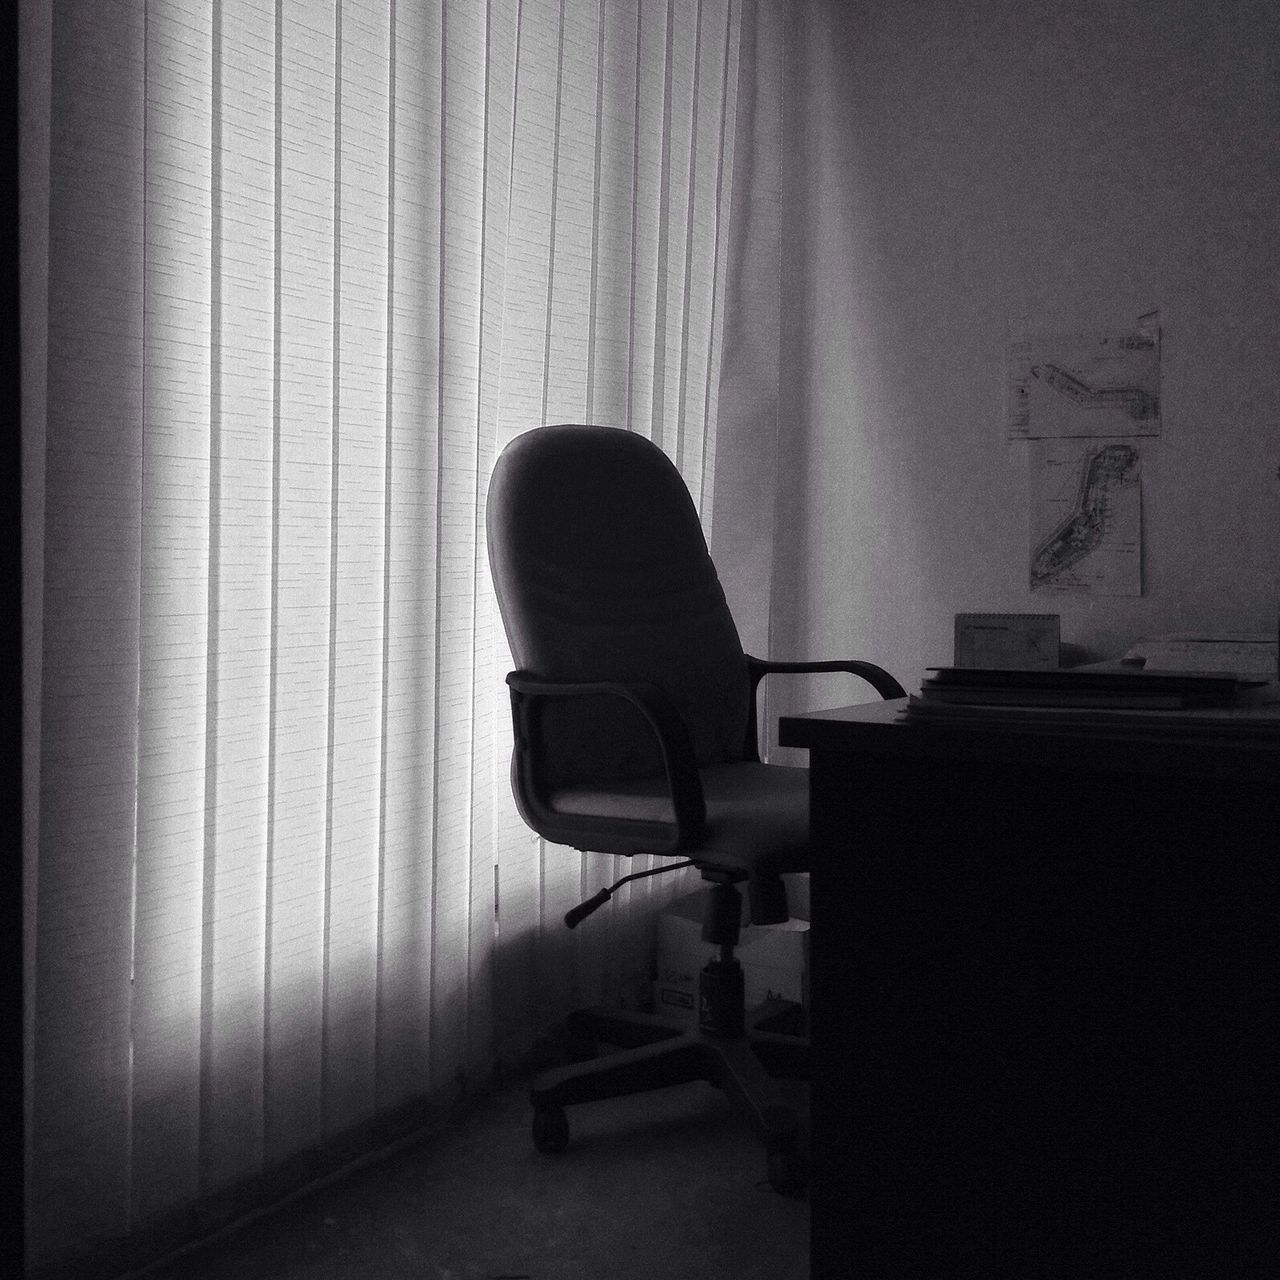 chair, indoors, curtain, home interior, window, furniture, no people, drapes, office chair, day